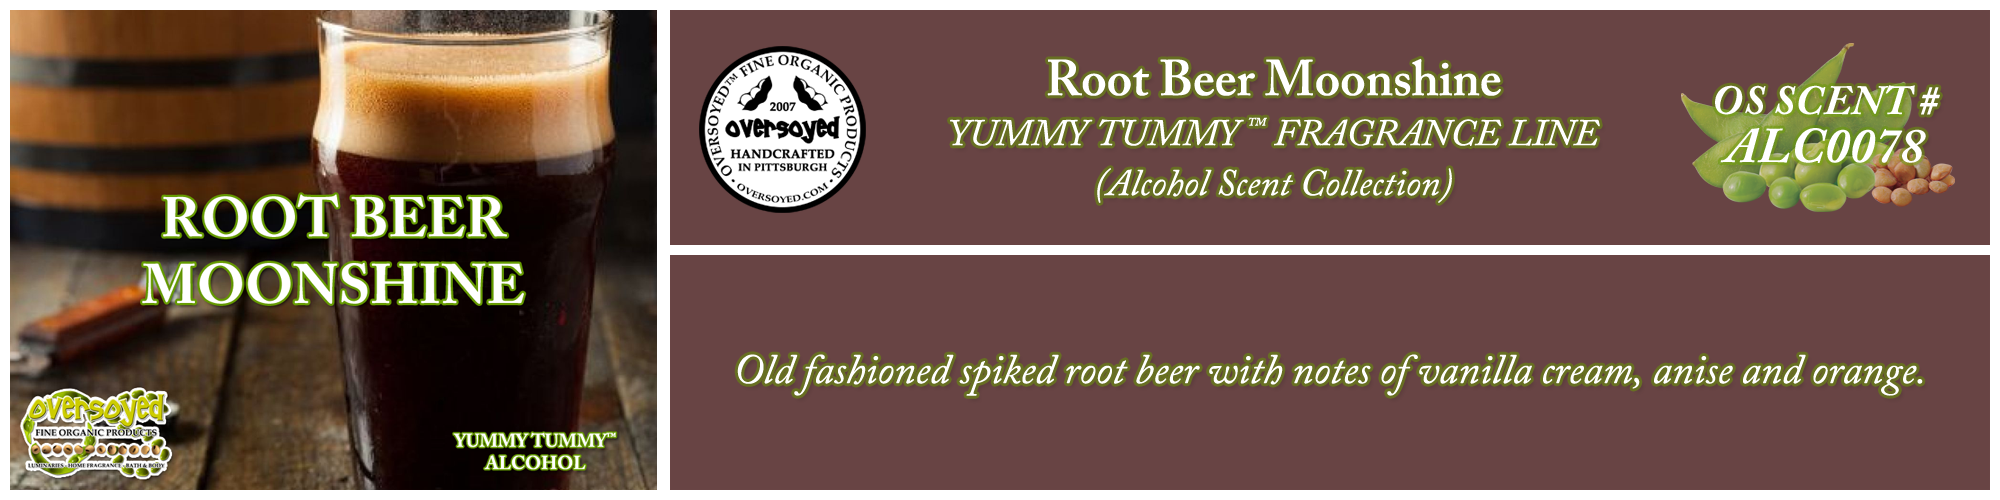 Root Beer Moonshine Handcrafted Products Collection